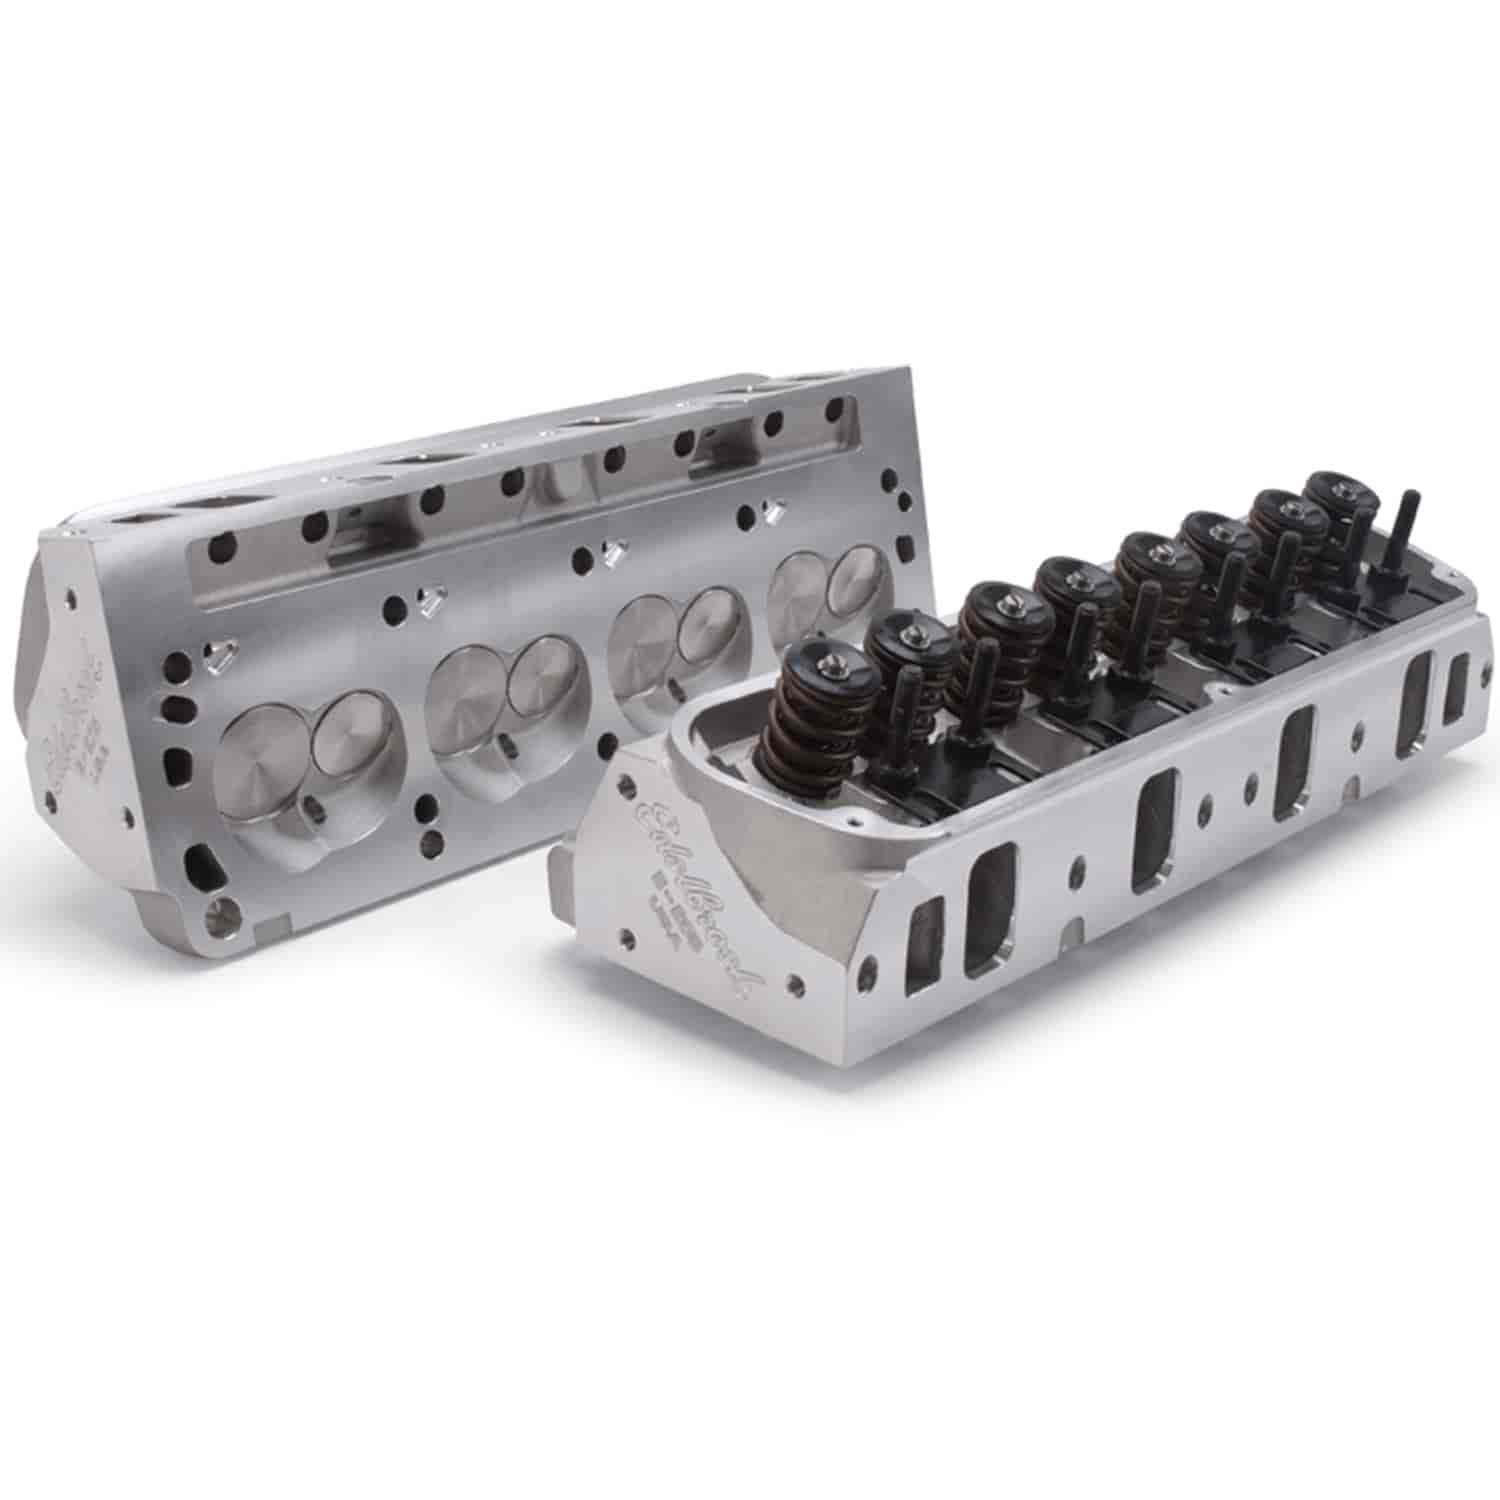 Edelbrock 5027 - Edelbrock E-Series 205 Heads for Small Block Ford